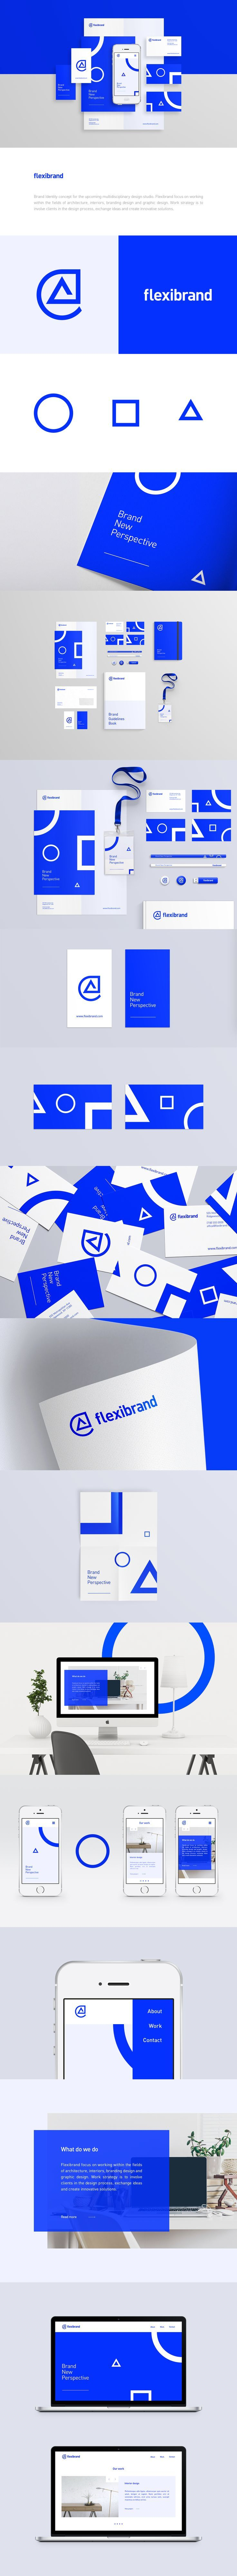 1226 best brand identity images on Pinterest